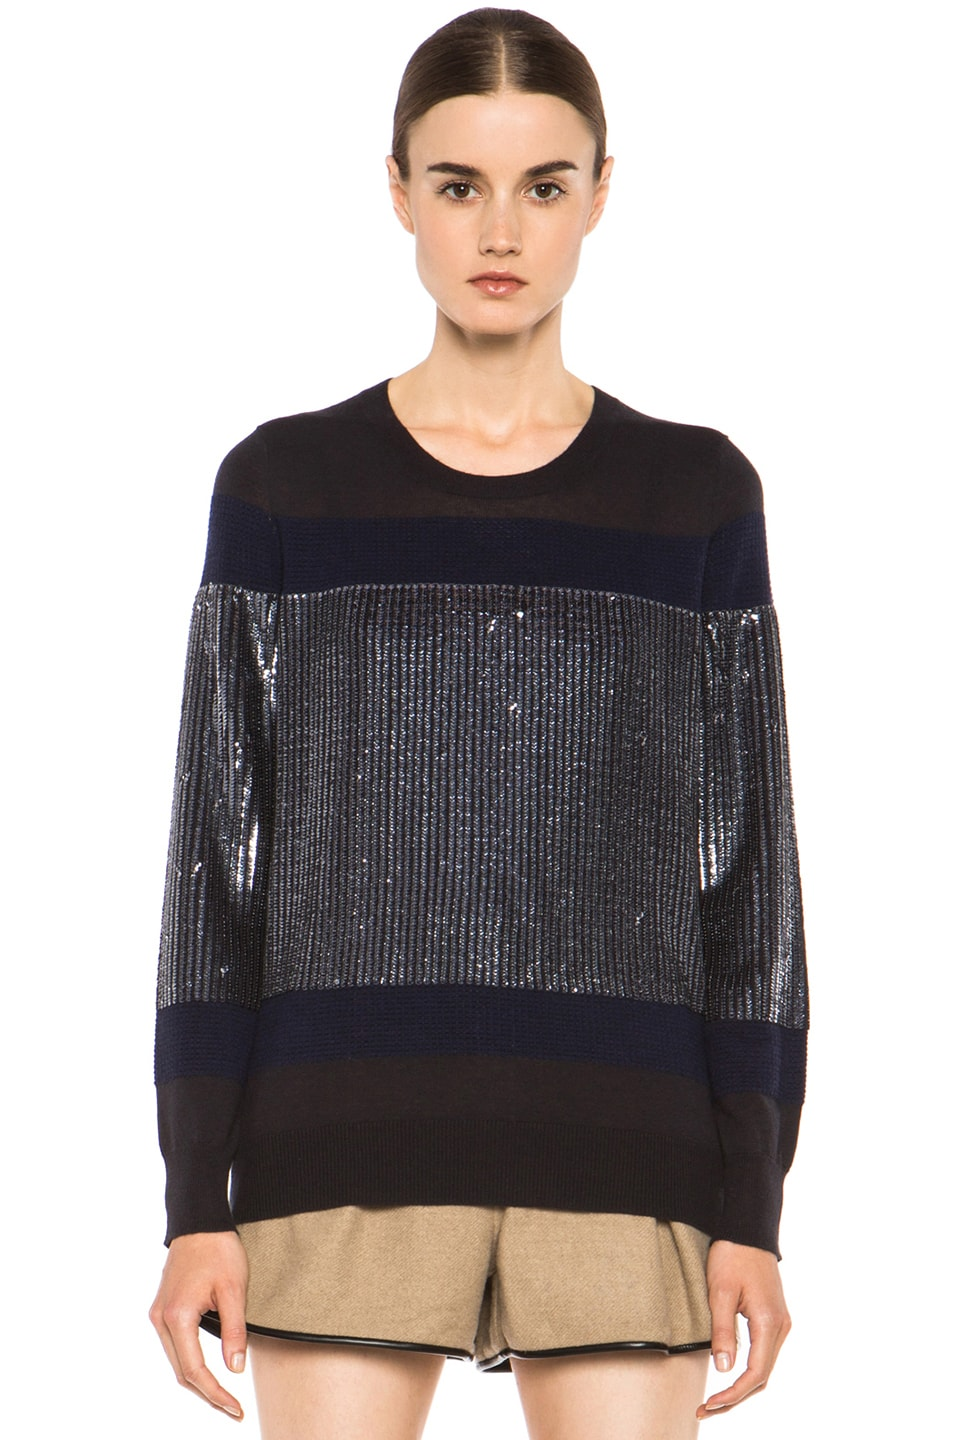 Image 1 of 3.1 phillip lim Sequin Stripe Merino Wool Pullover in Charcoal